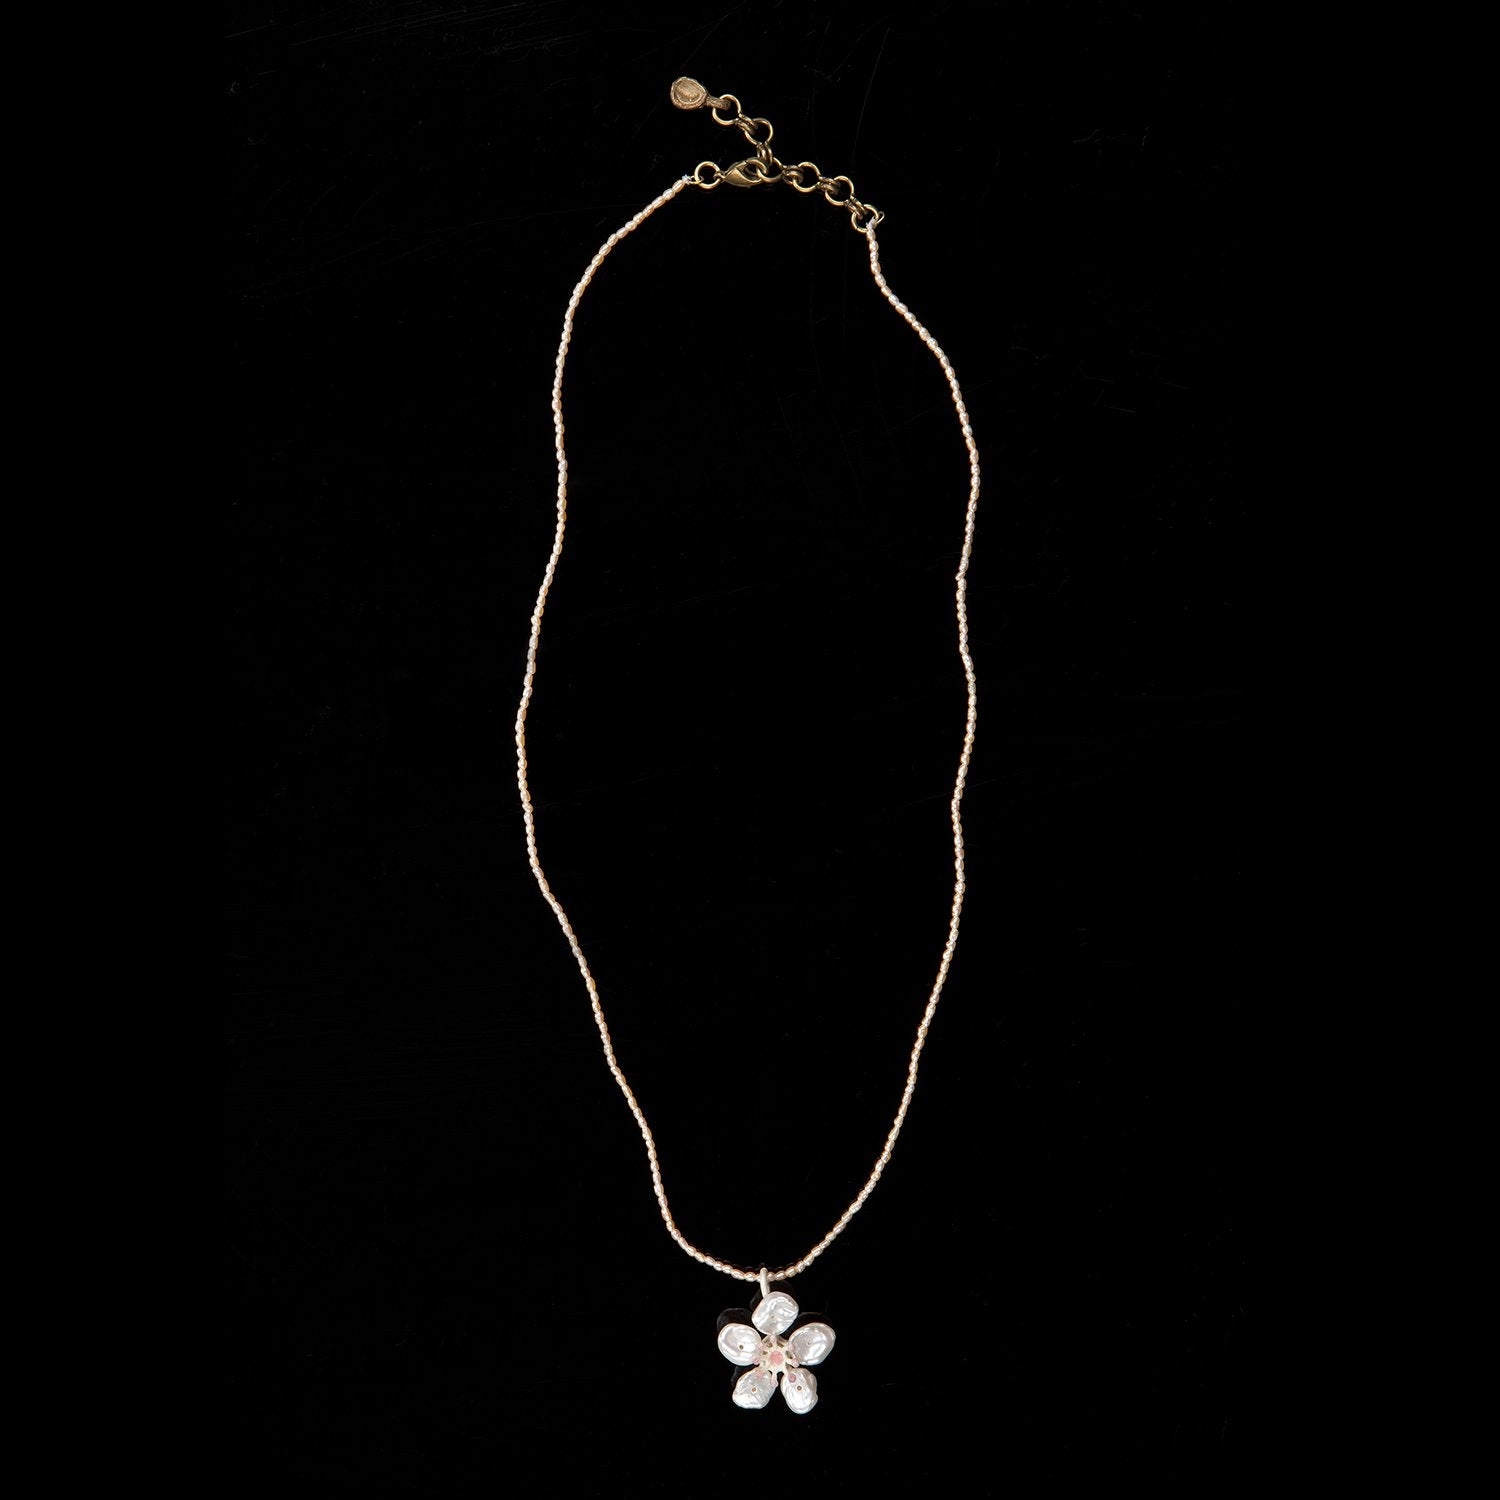 Cherry Blossom Pendant - Single Flower